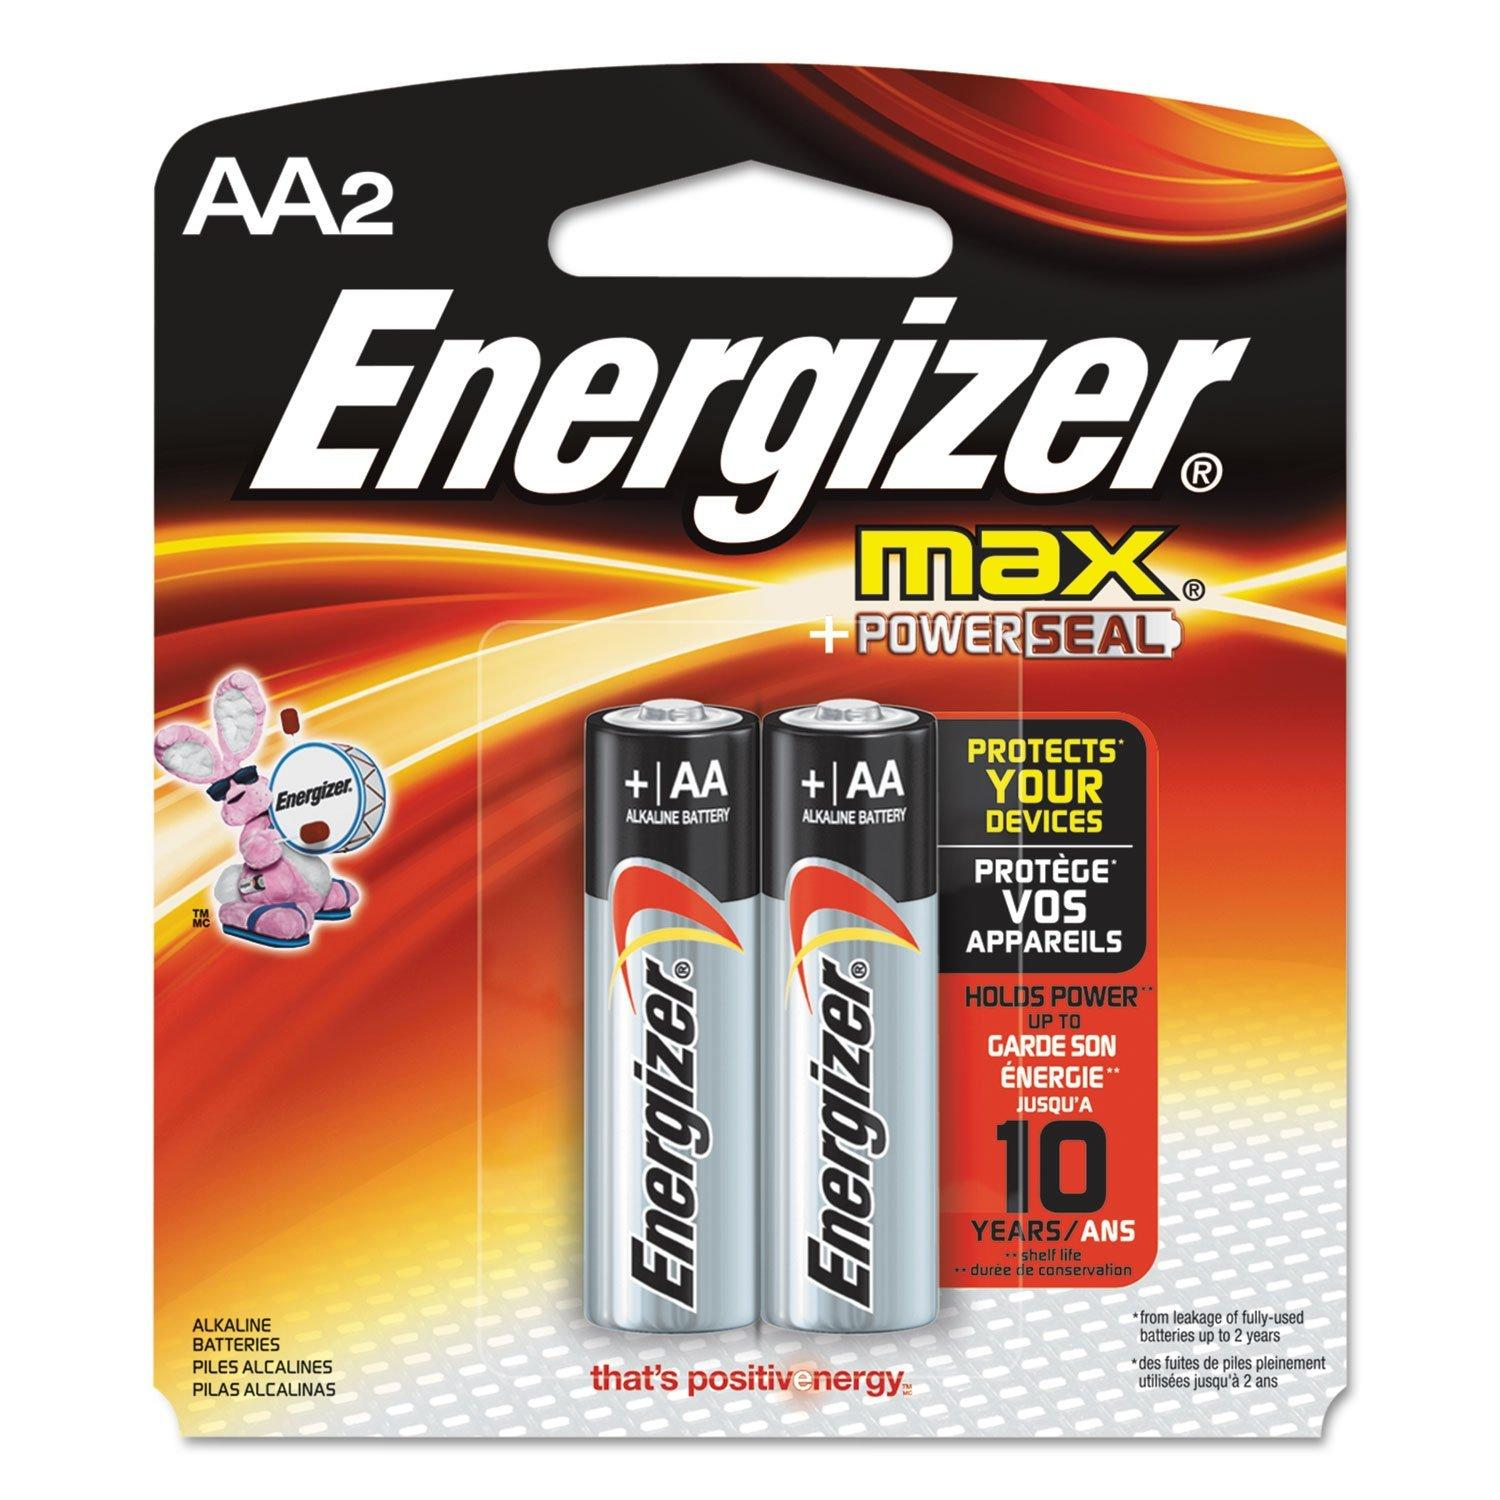 Energizer MAX AA 2 Batteries/Pack Alkaline Batteries